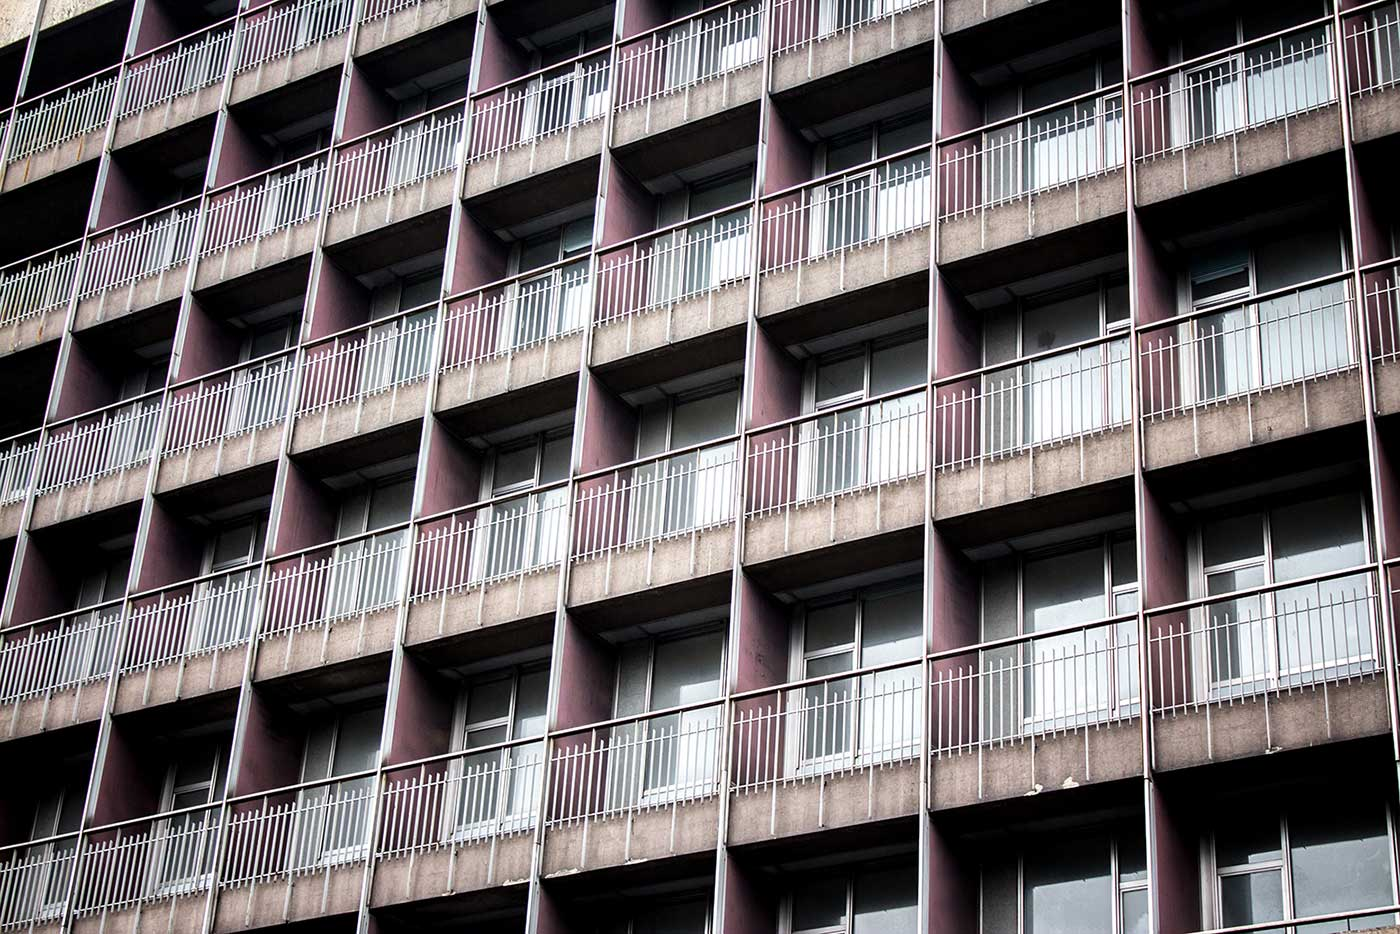 At Hotel Jugoslavija, a wall of balconies look out across Bulevar Nikole Tesle.